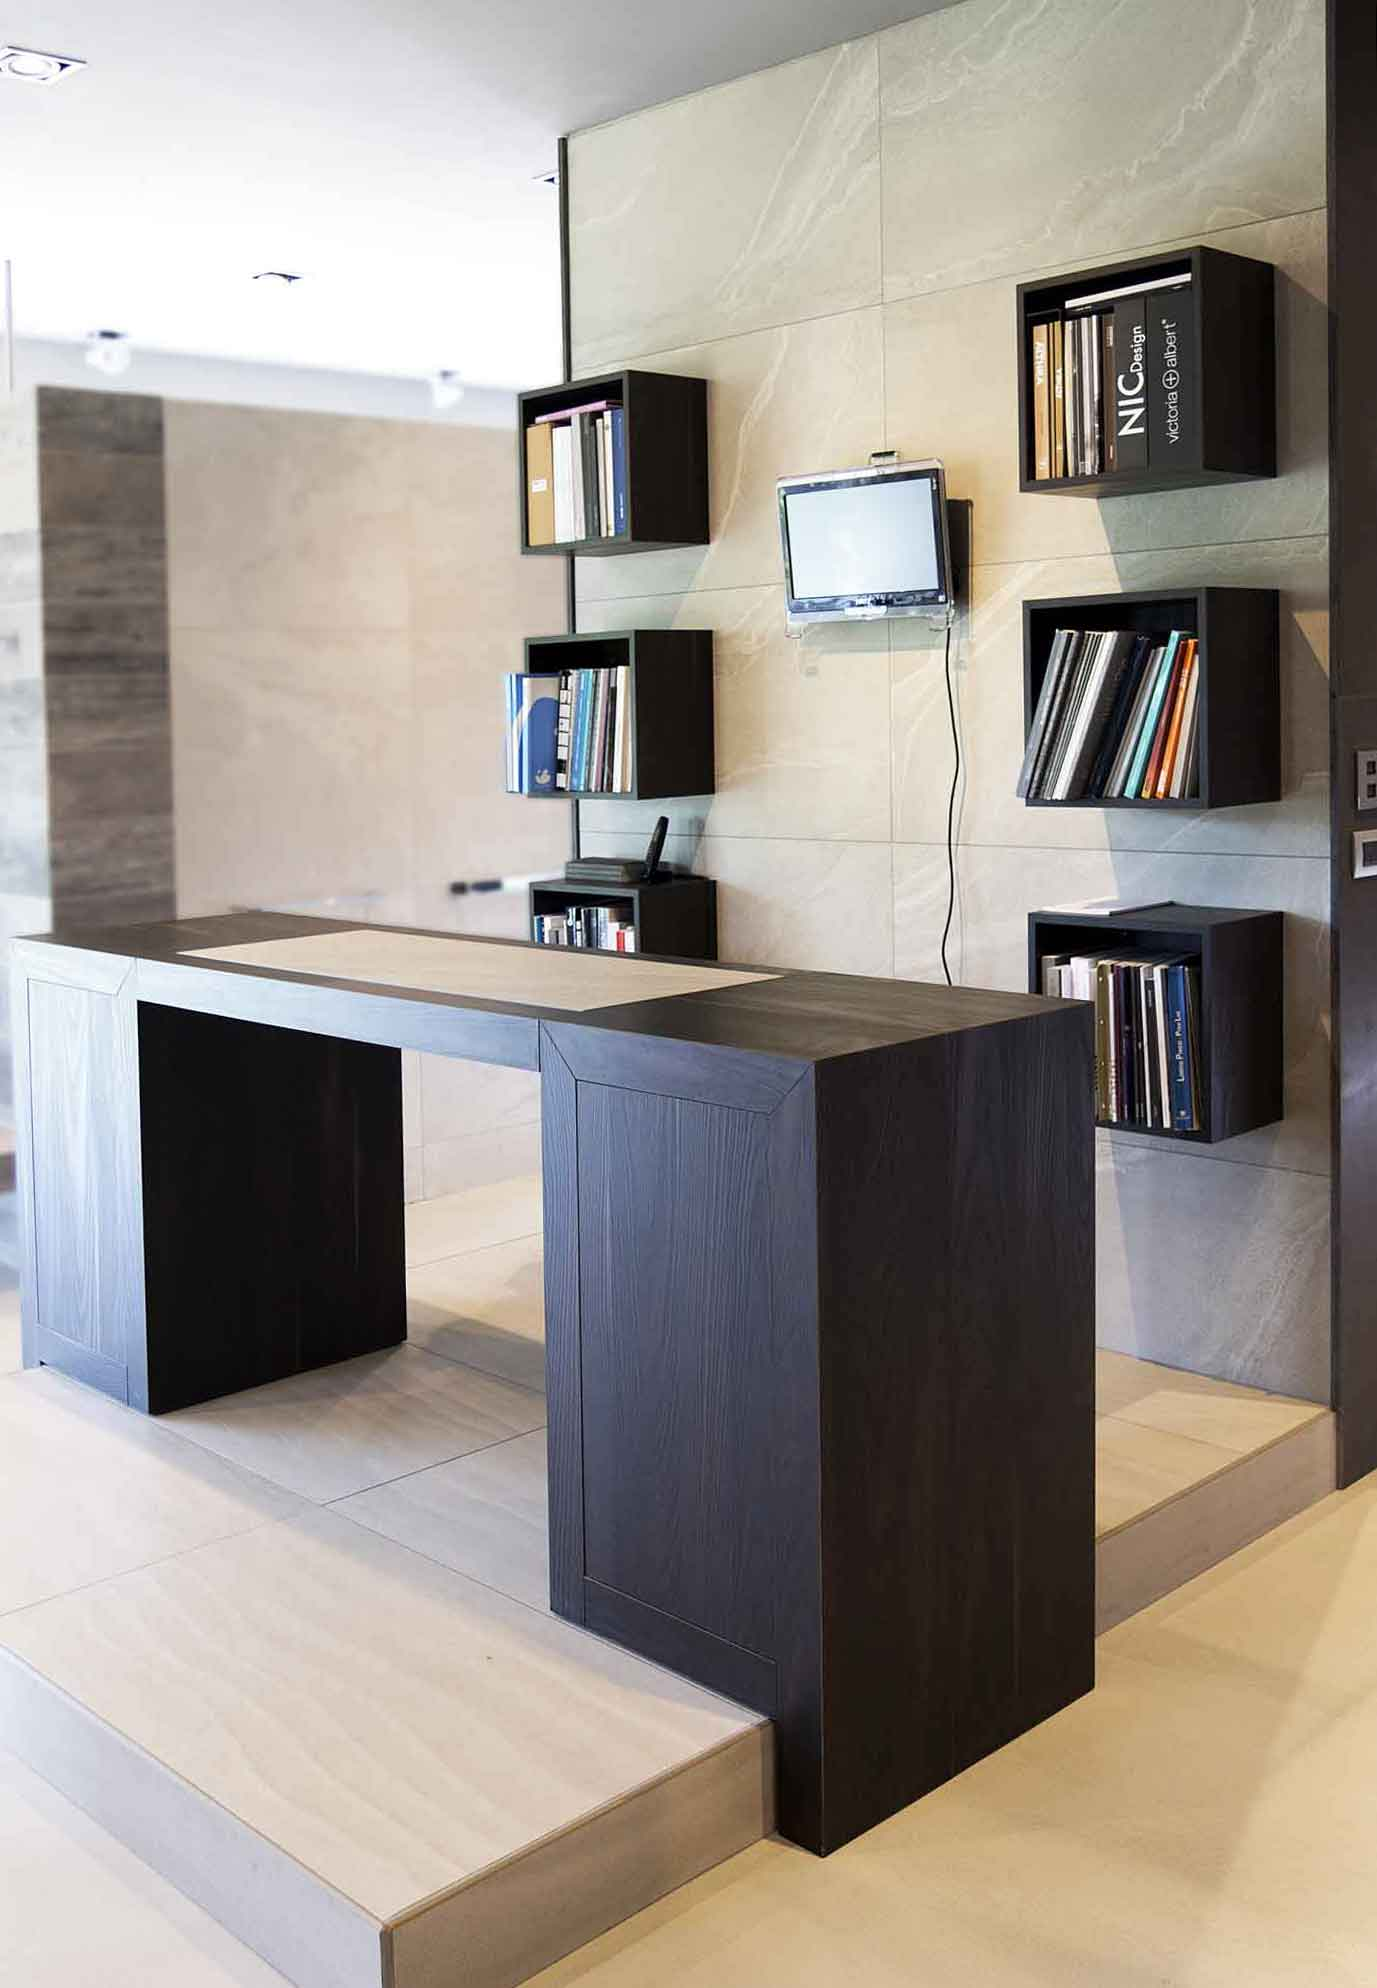 Naldi pavimenti, Showroom, Reception